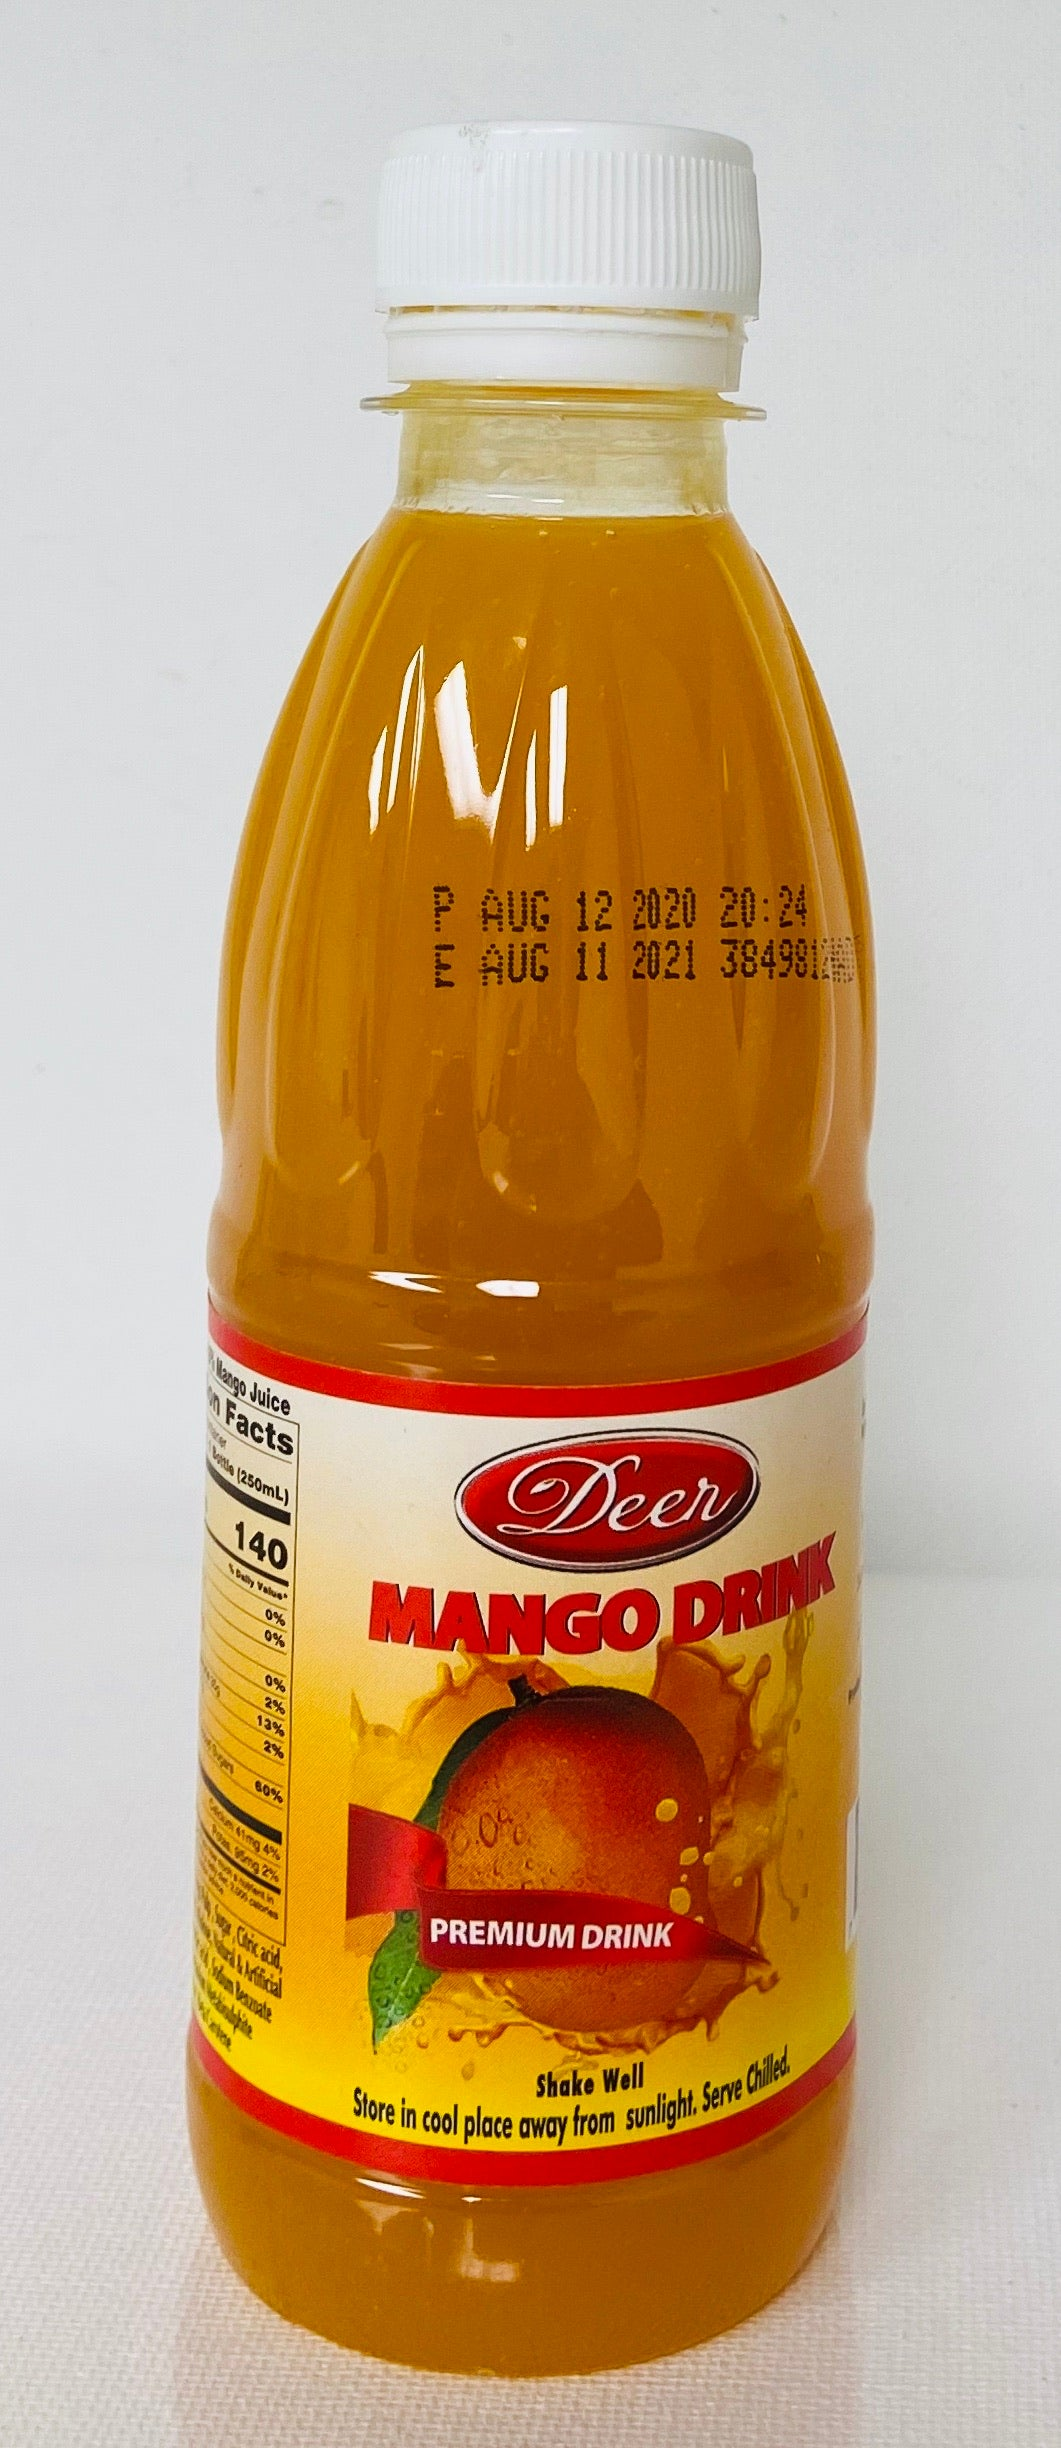 Deer Premium Mango Drink (250 ml)